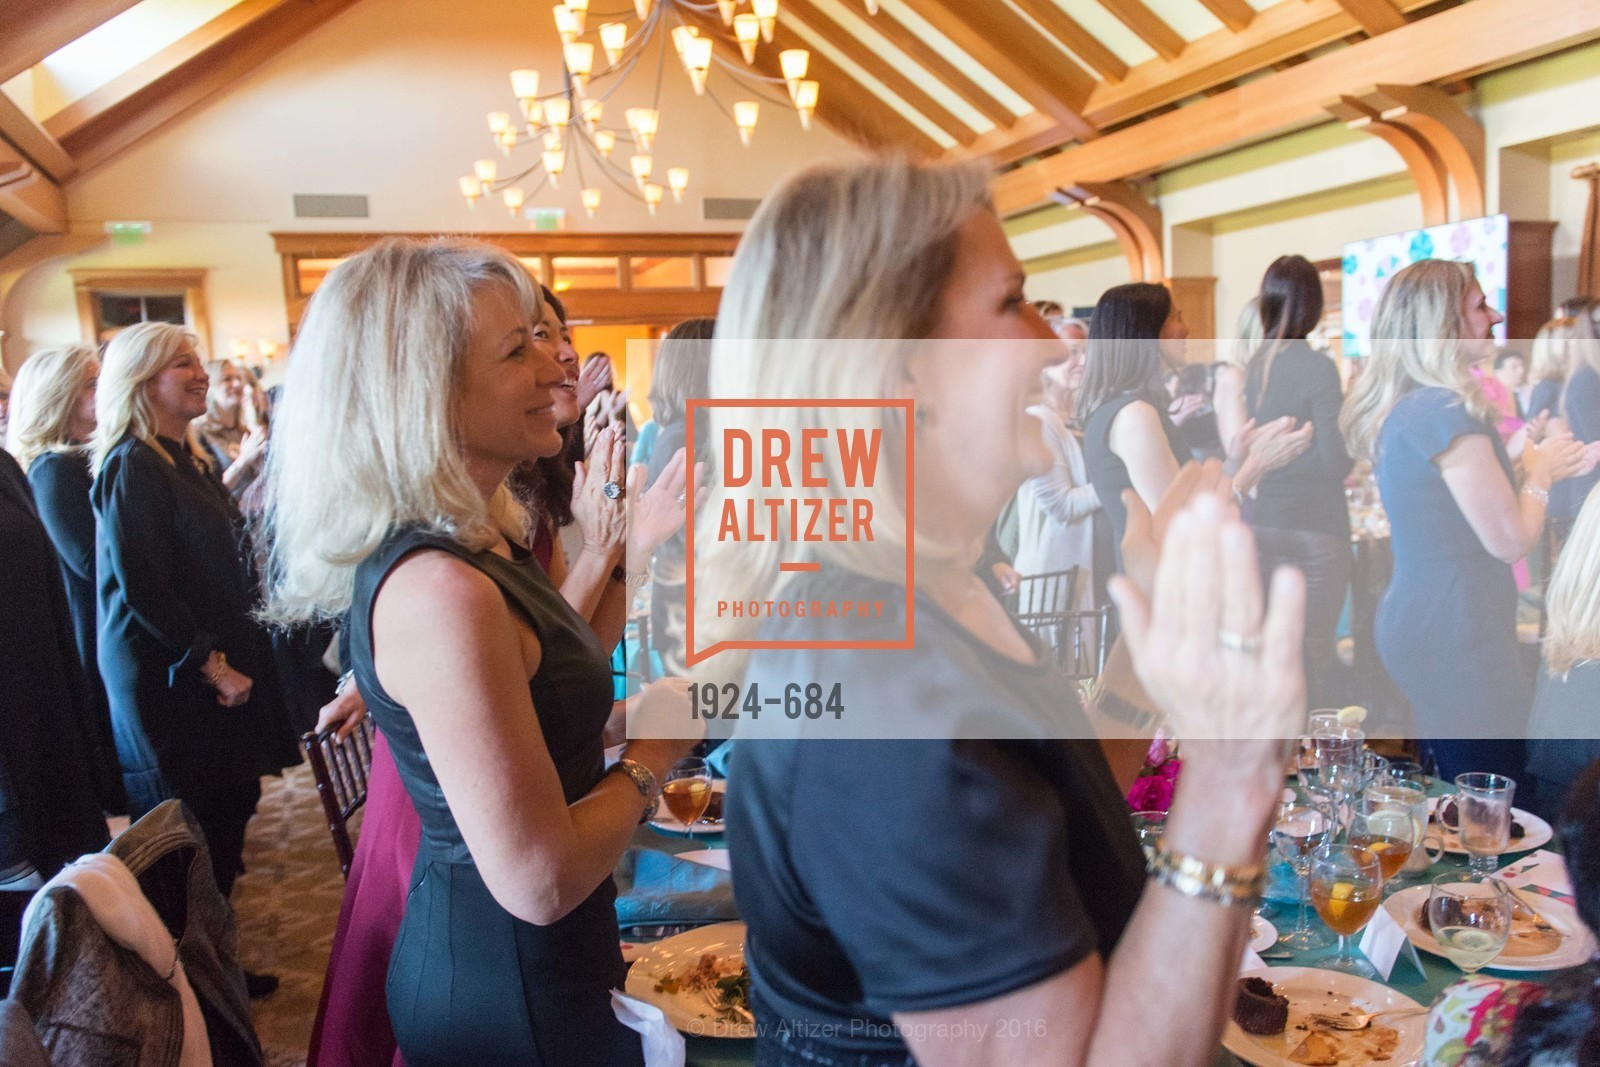 Extras, Under One Umbrella, January 13th, 2016, Photo,Drew Altizer, Drew Altizer Photography, full-service agency, private events, San Francisco photographer, photographer california